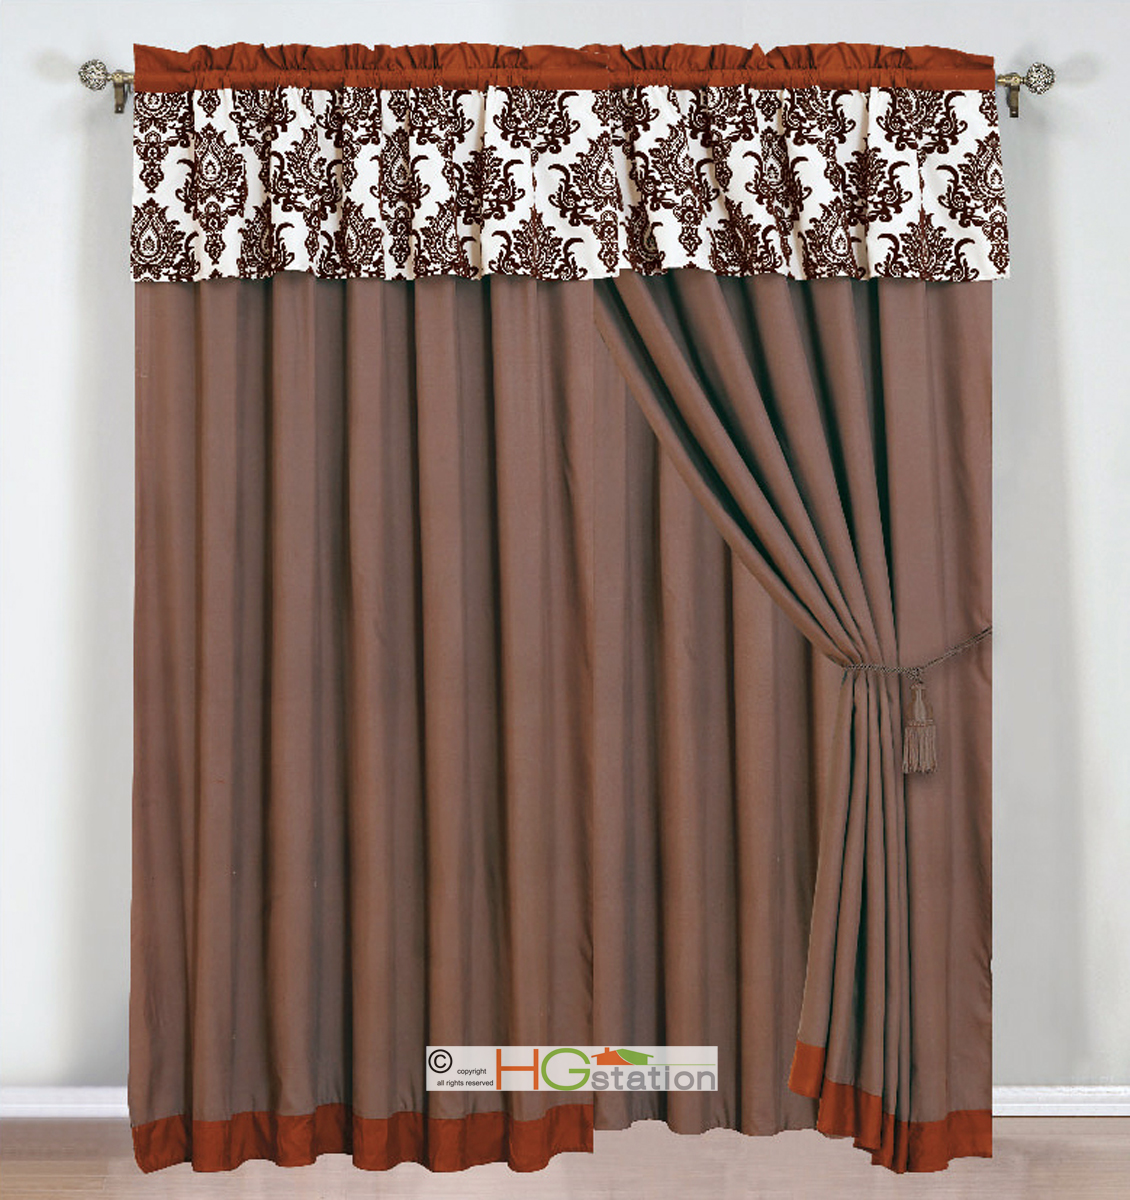 4p felt damask floral curtain set orange rust coffee beige. Black Bedroom Furniture Sets. Home Design Ideas